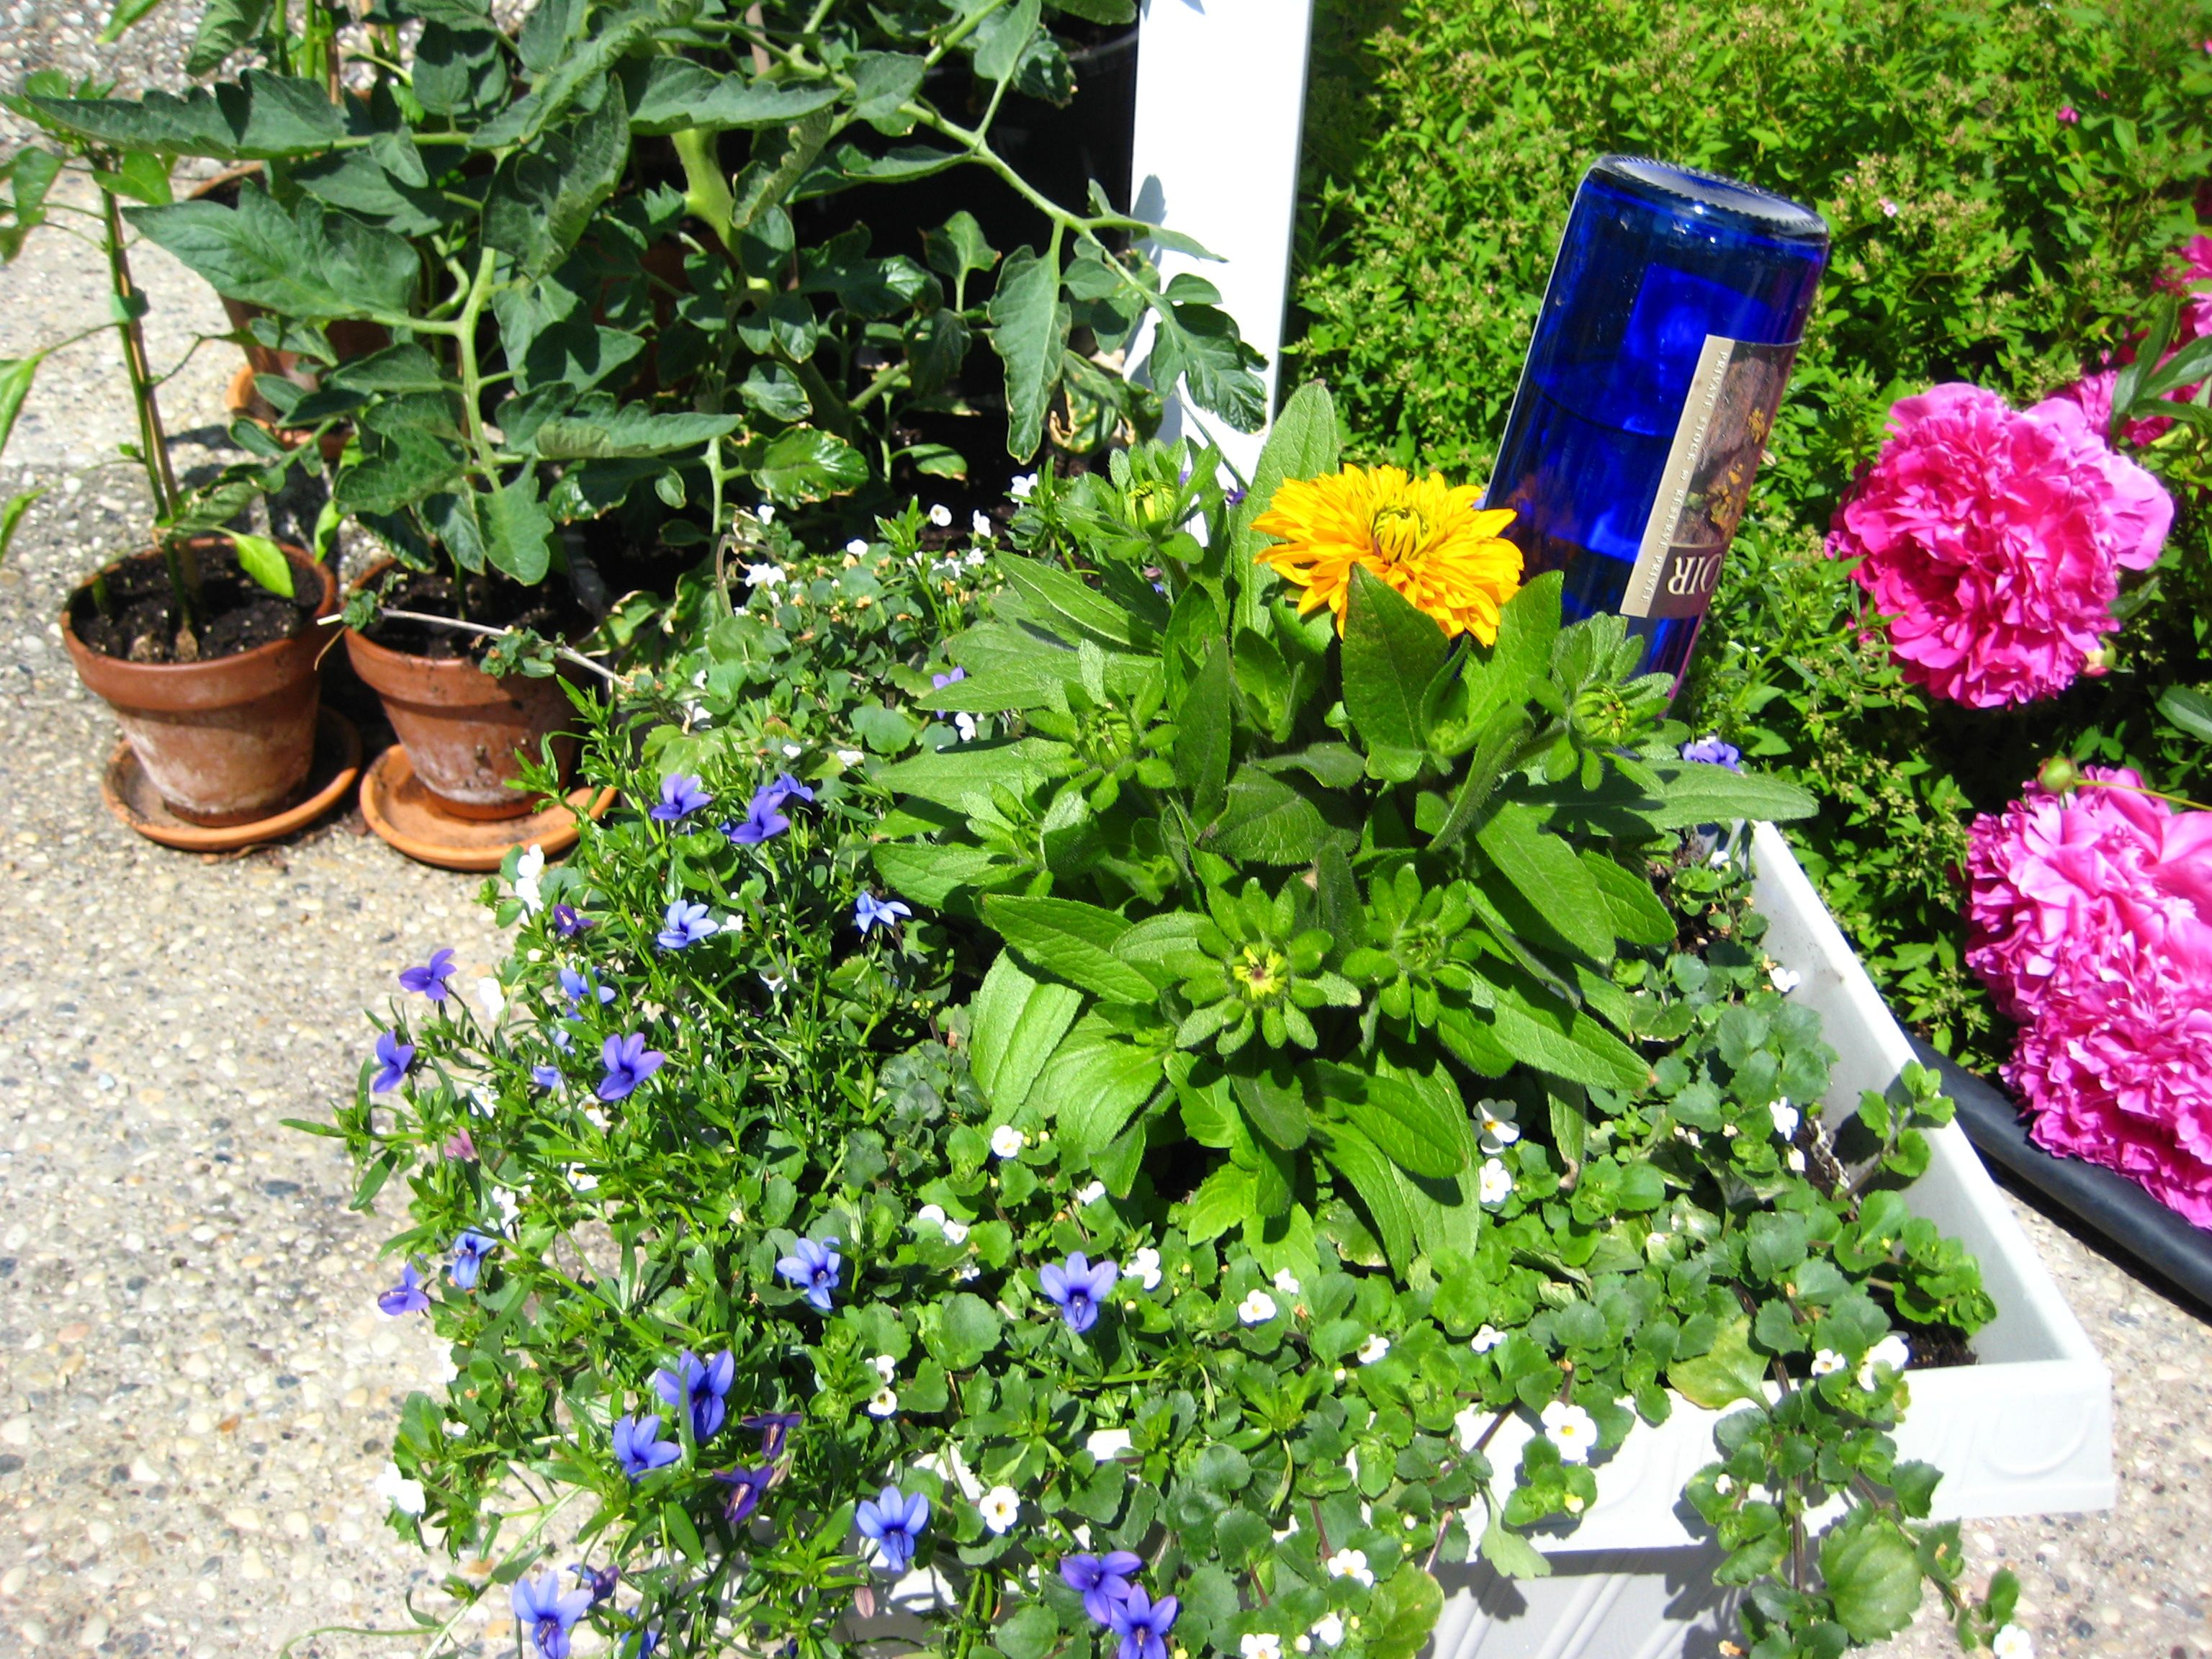 recycle a wine bottle to water your containers, plants. Just like ...